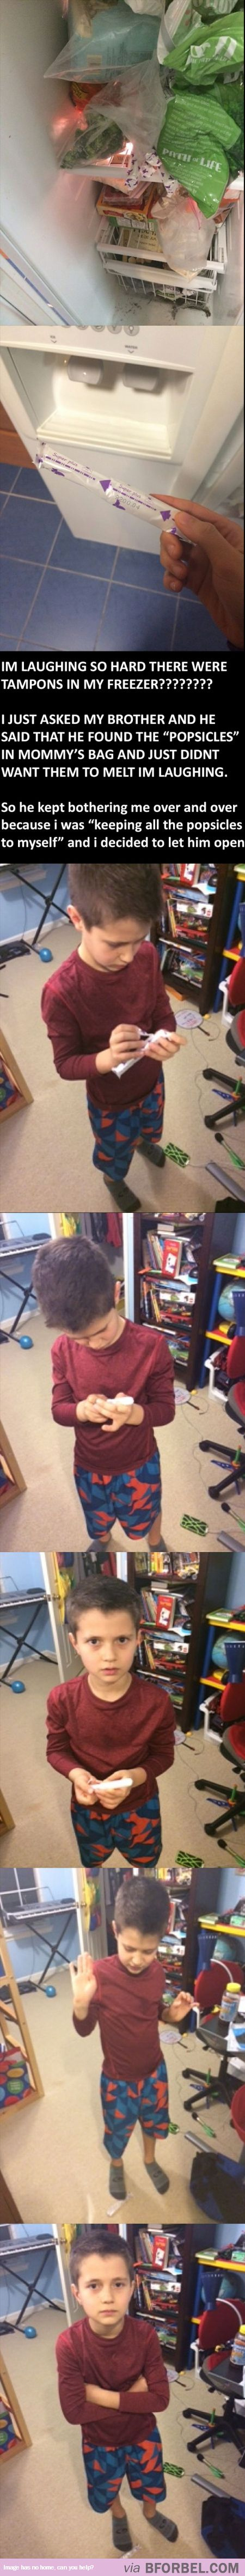 Little Brother Learned About Tampons The Hard Way…haha, omg, poor kid! It was a sweet gesture though.